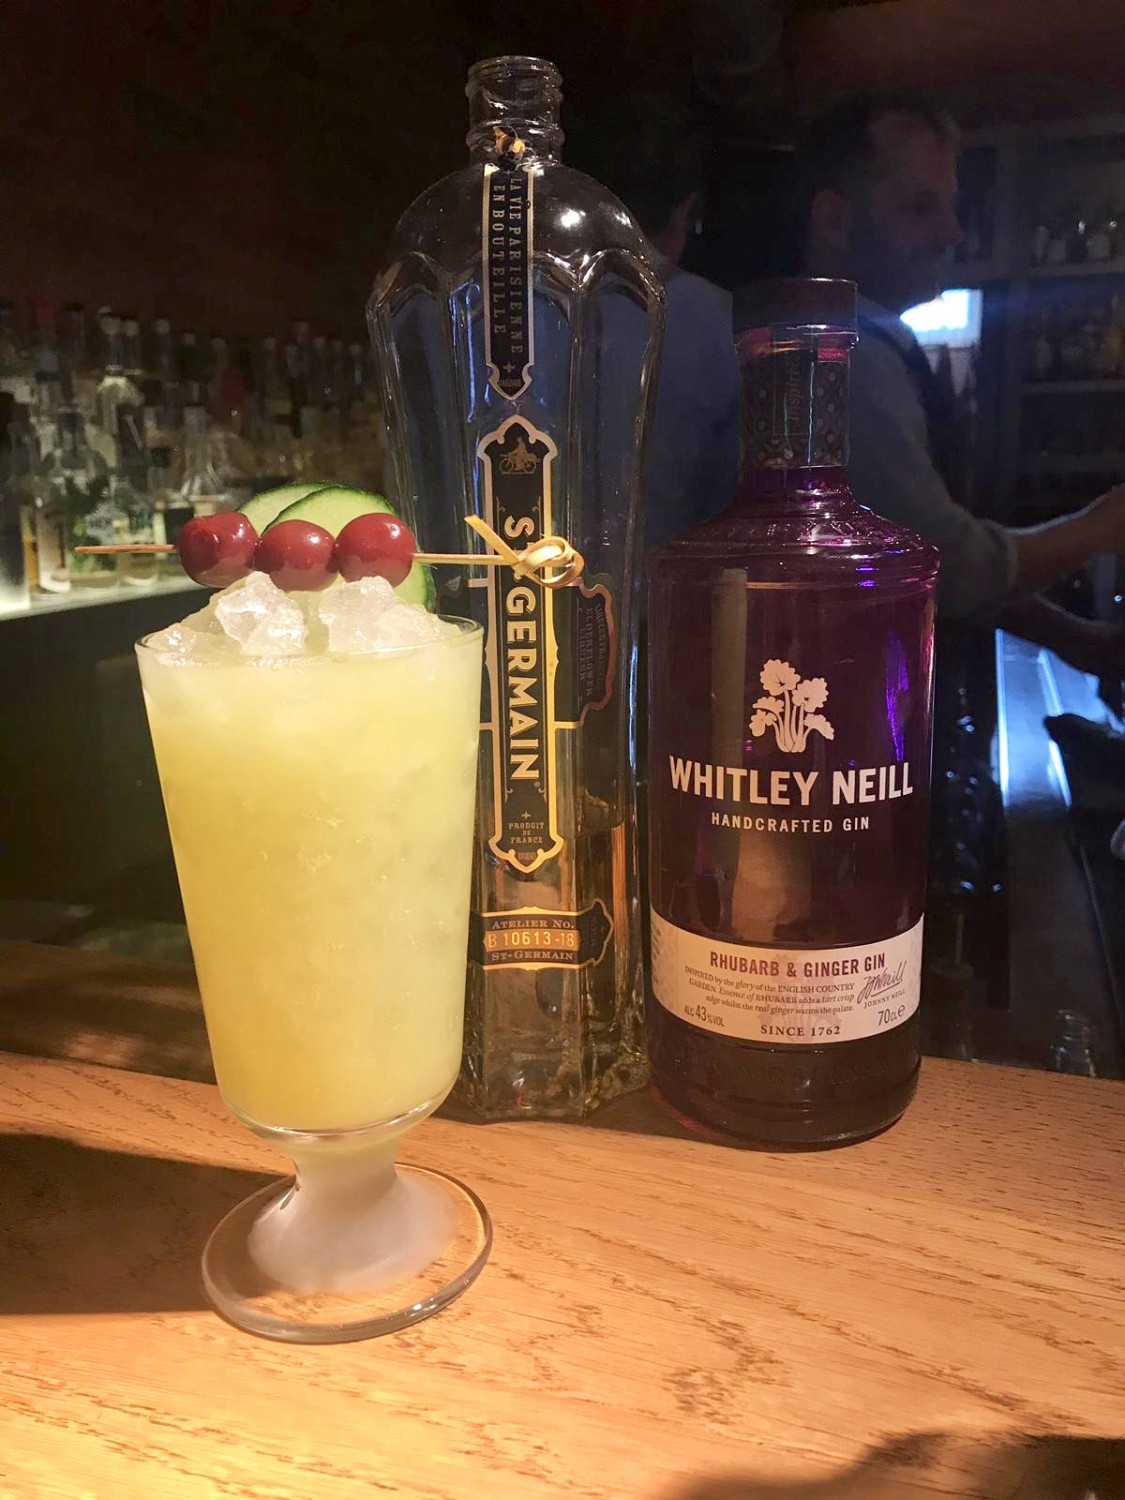 How to mix Whitley Neill Rhubarb and Ginger (Part I)